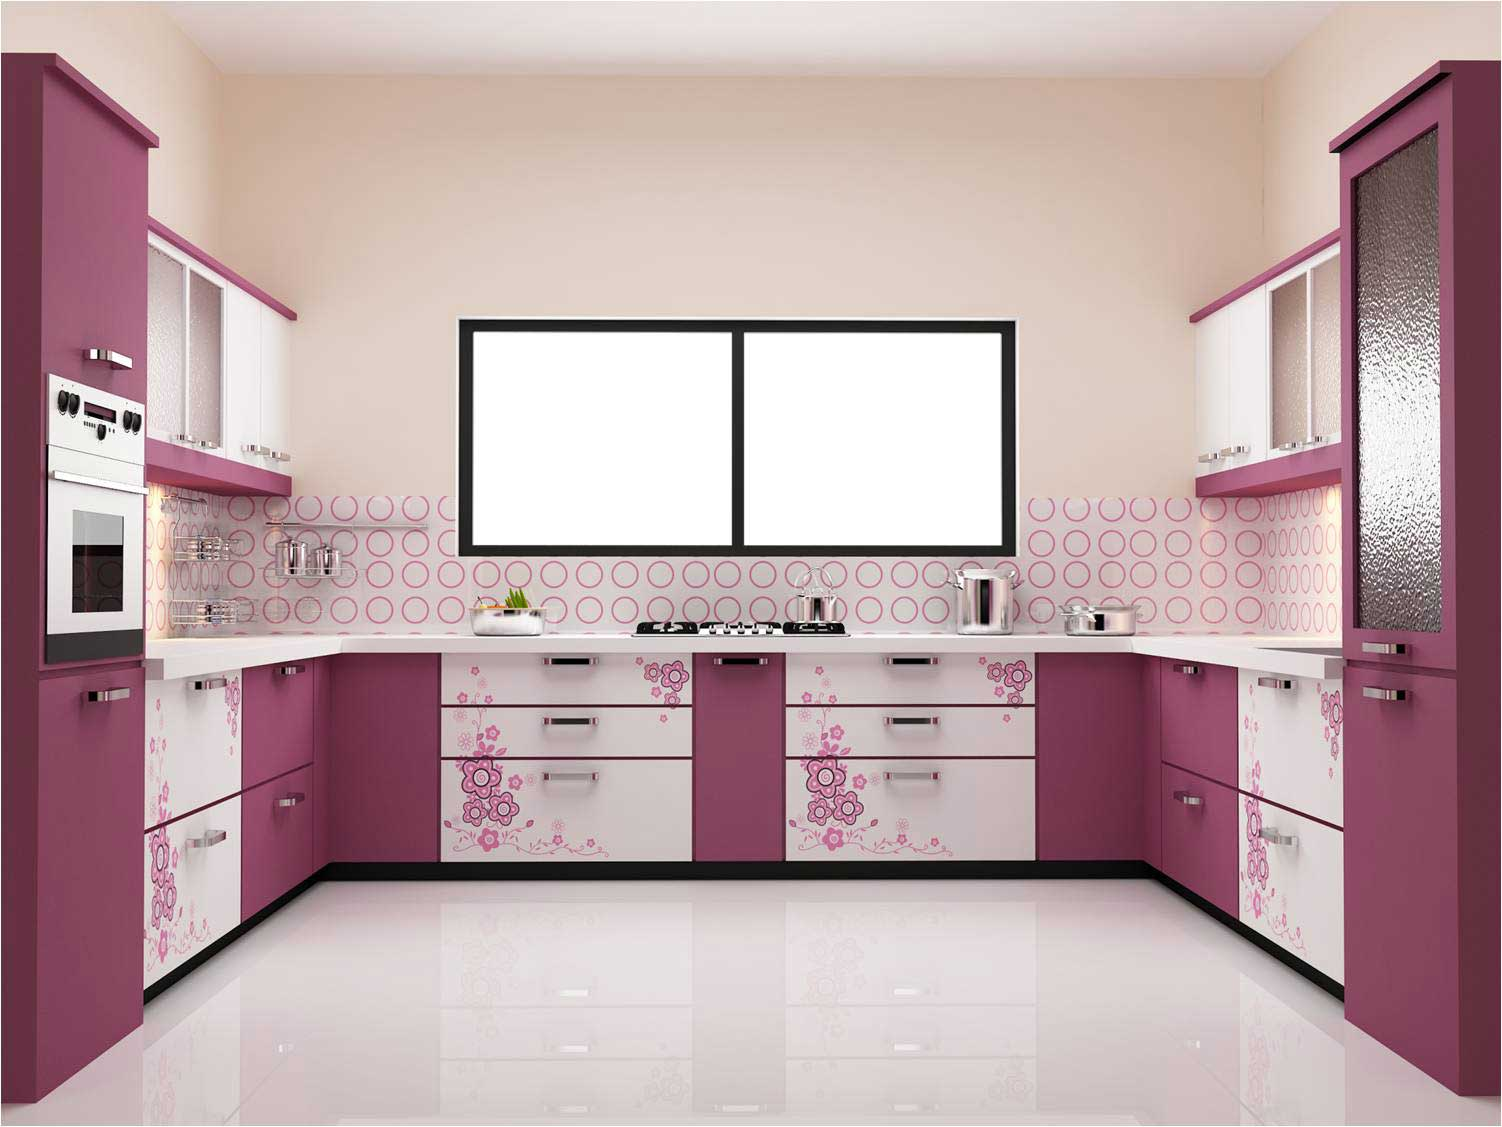 modular kitchen installation interior decoration kolkata modern kitchen furniture designs ideas an interior design